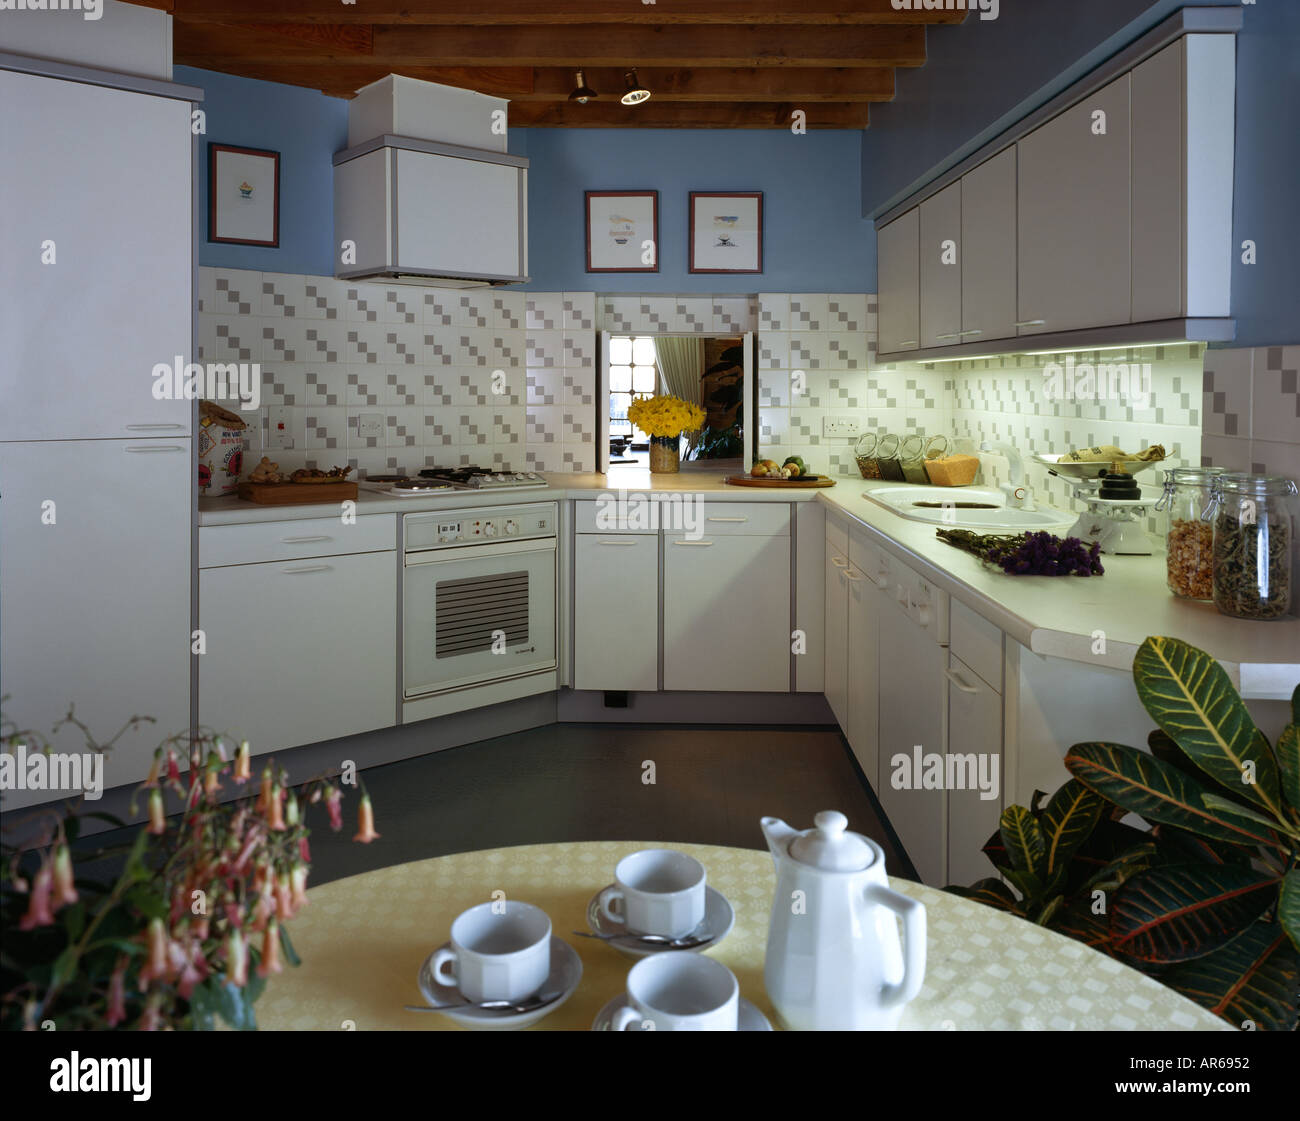 Show Flat, New Concordia Wharf, Docklands. The kitchen. - Stock Image